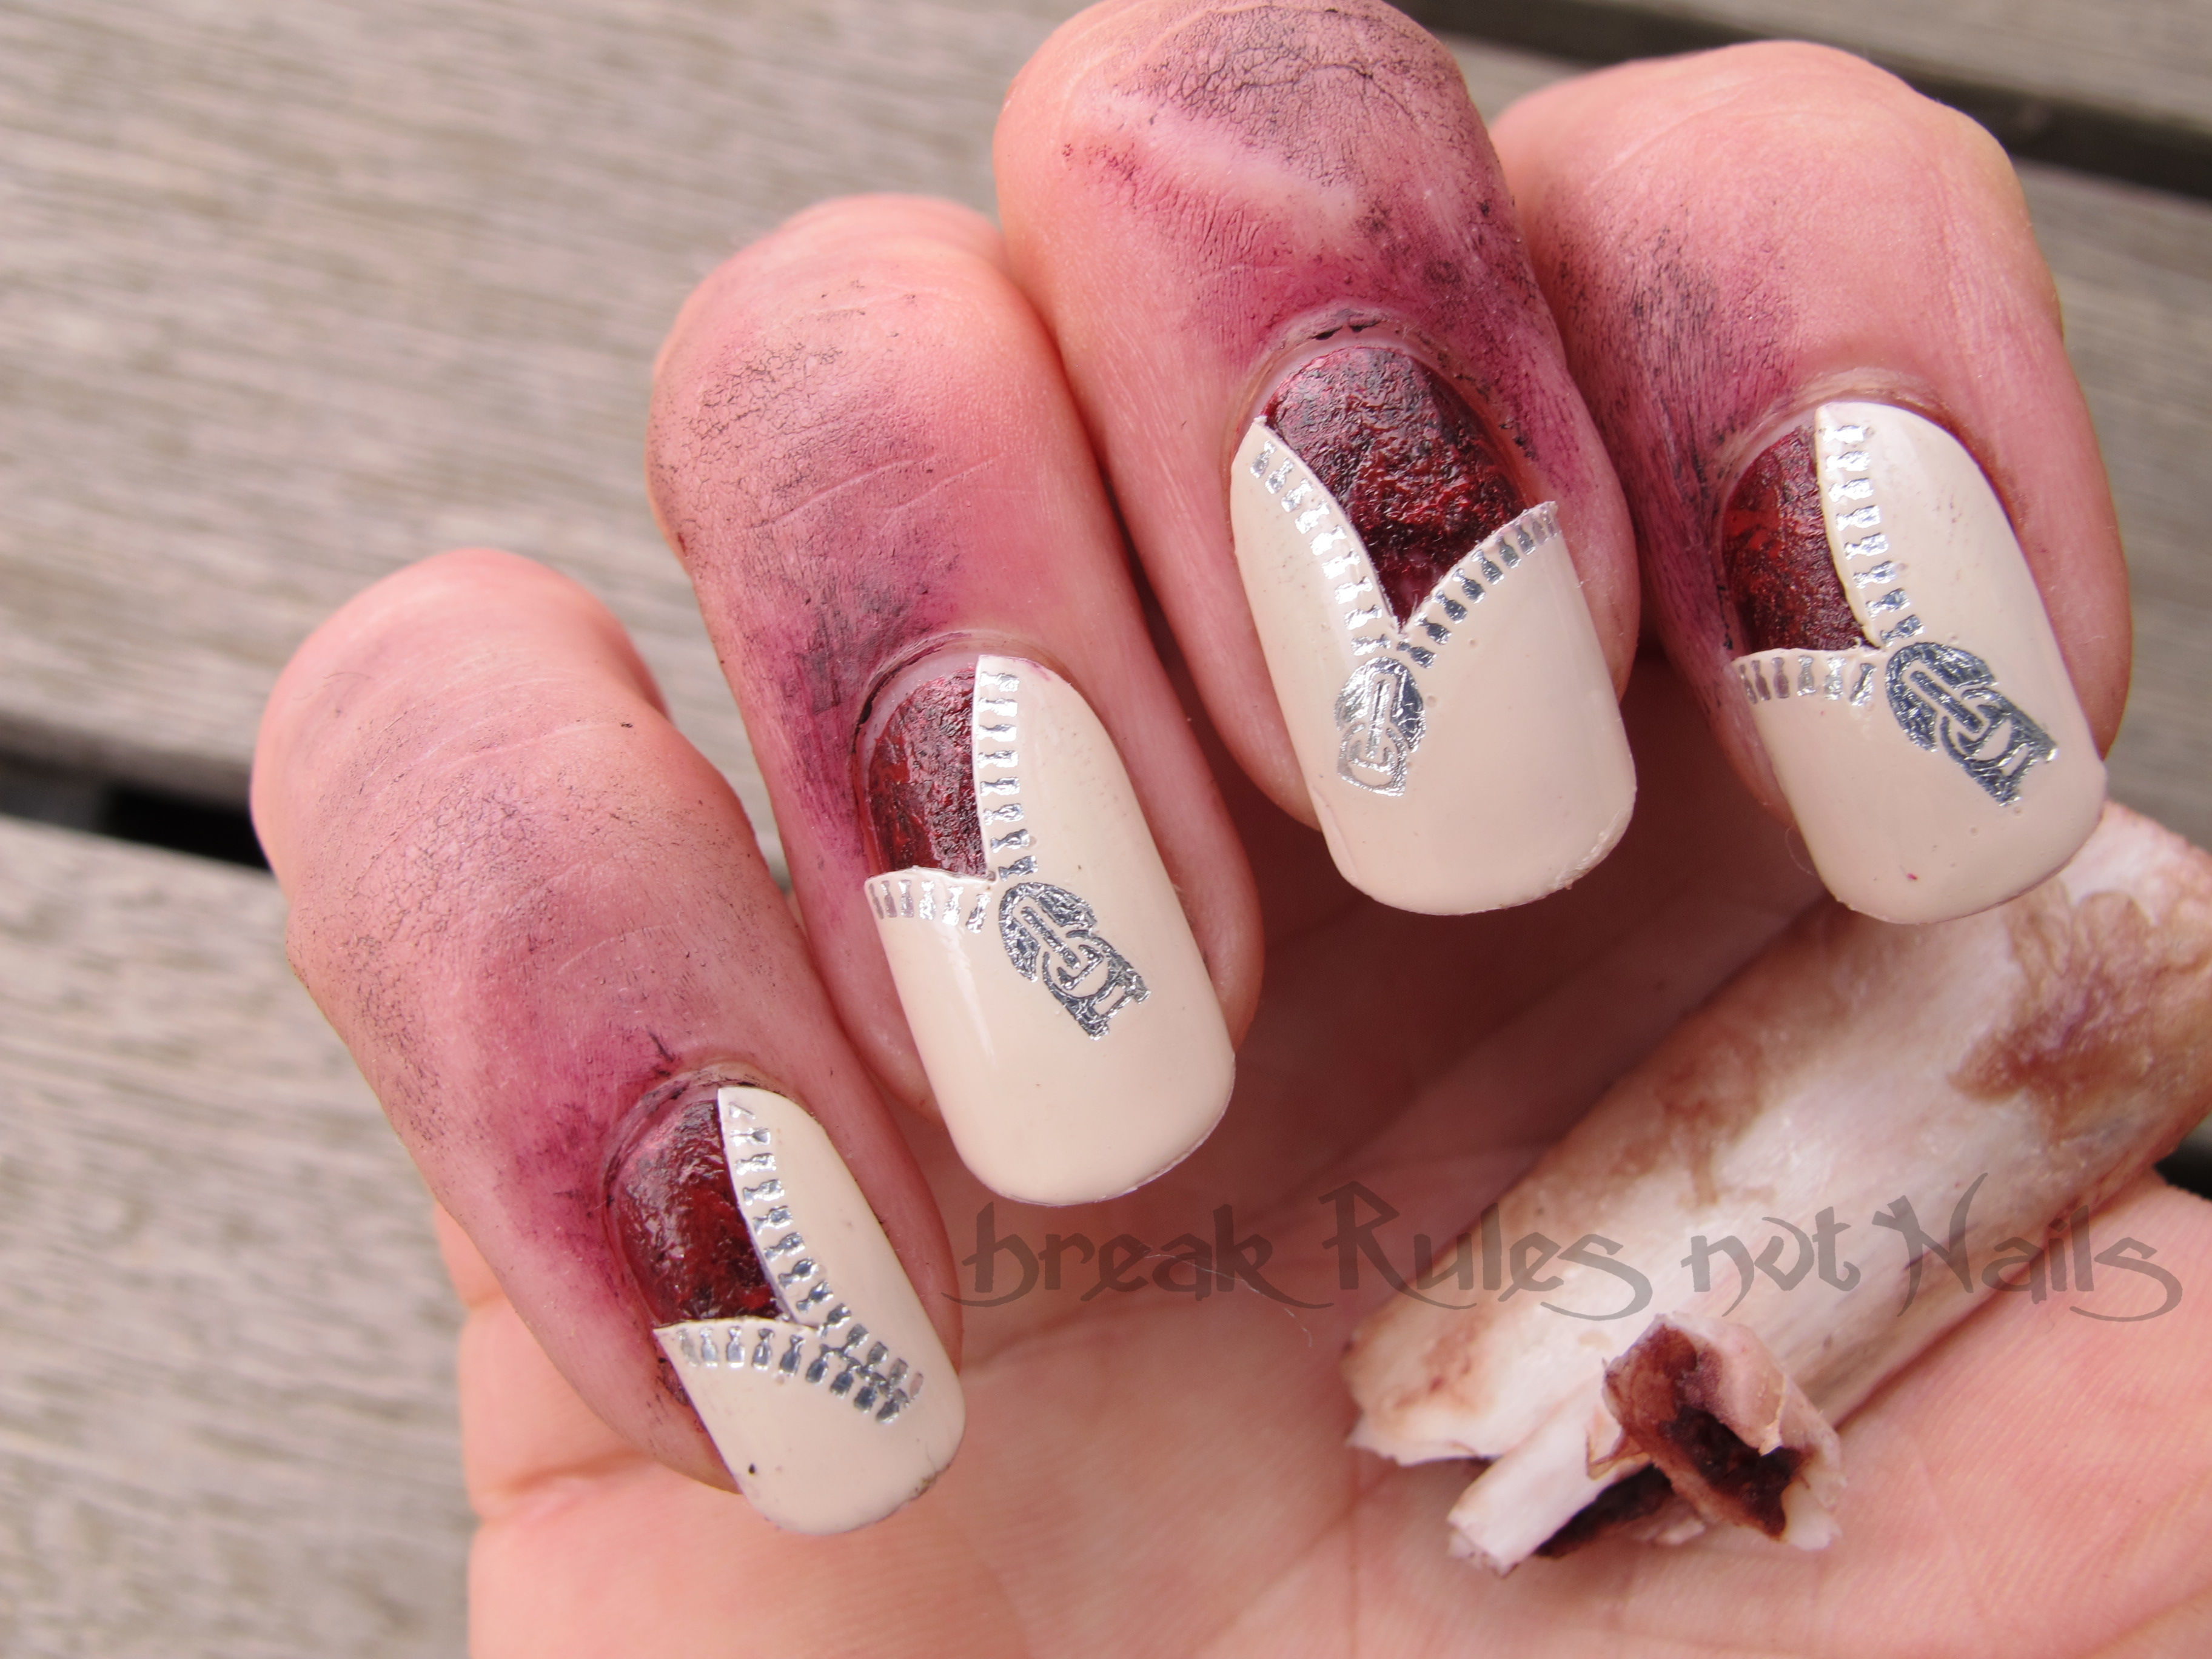 zombie nails | Break rules, not nails